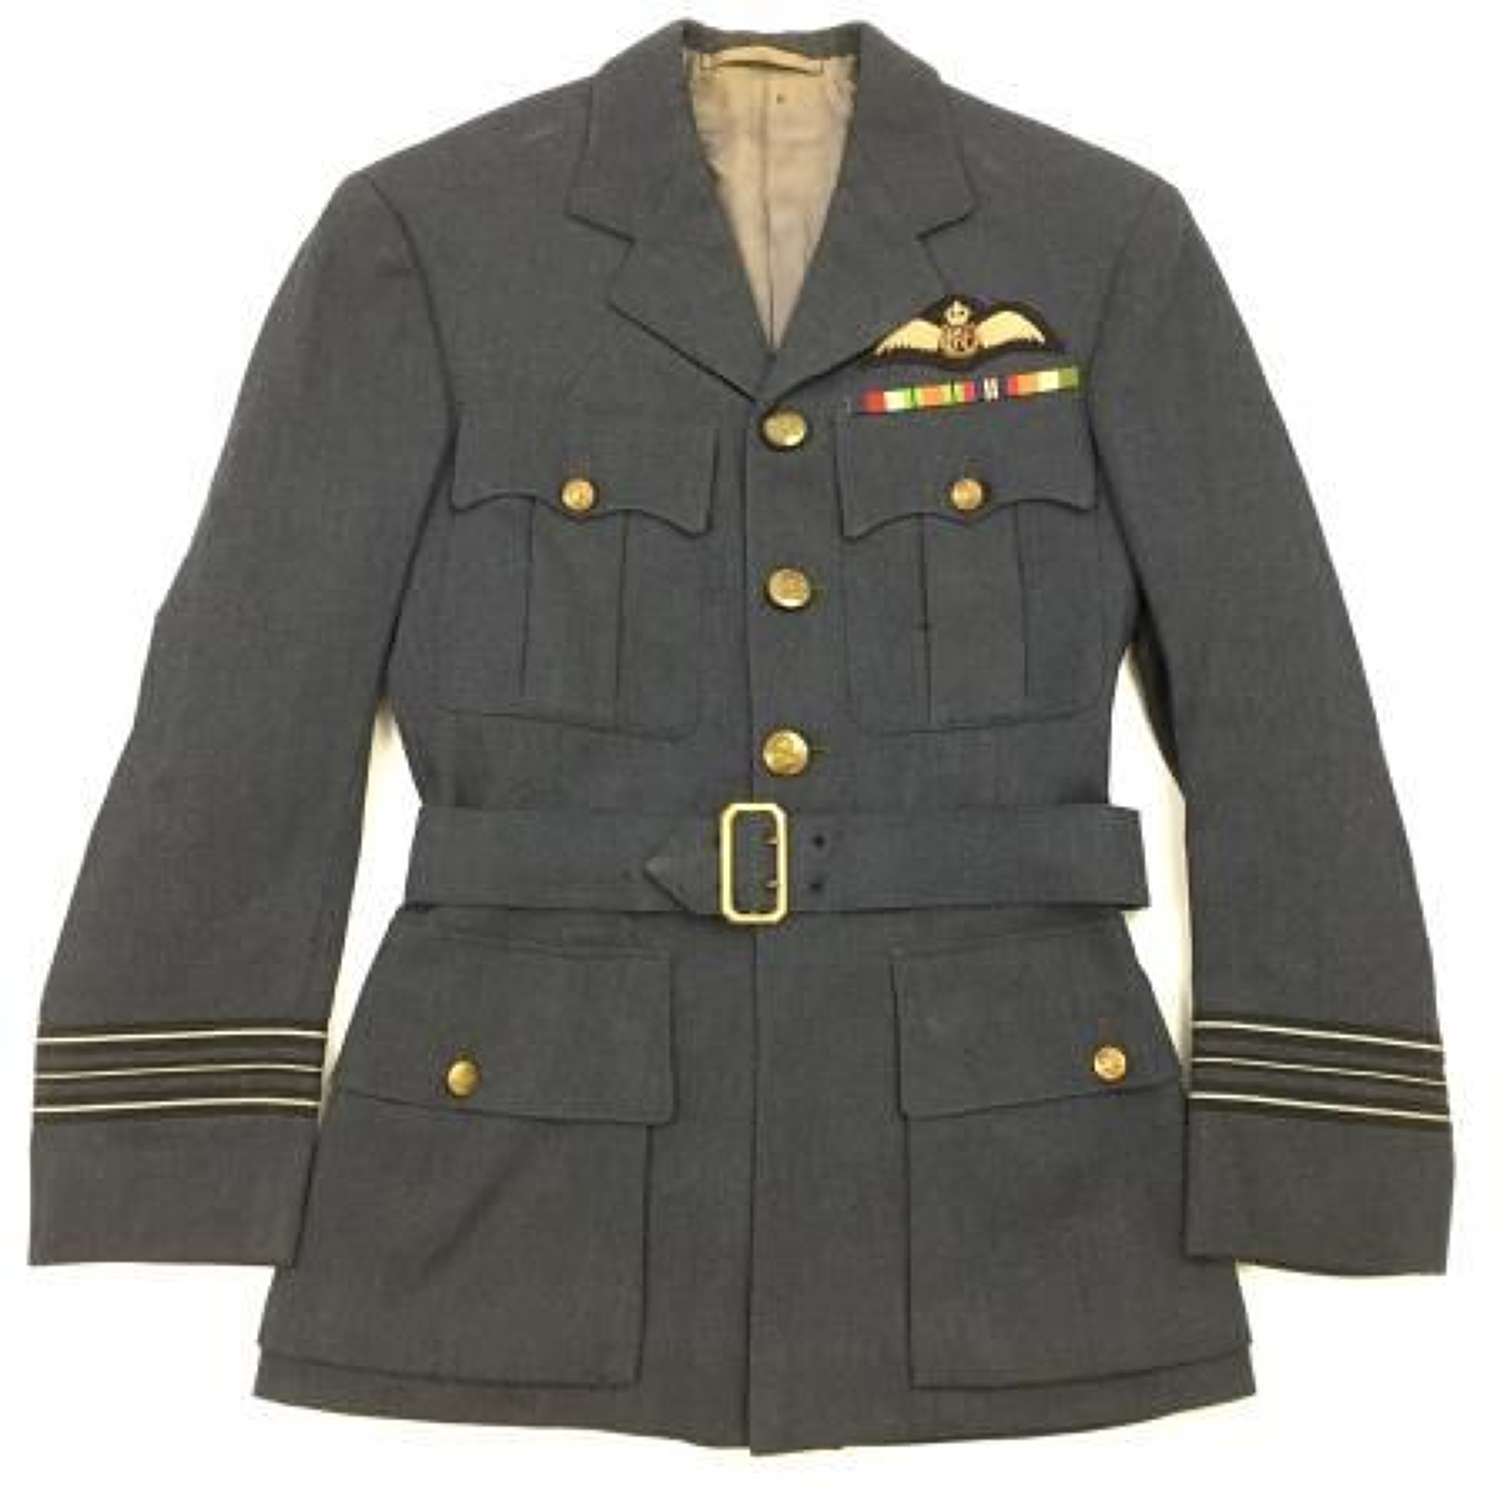 1959 Dated RAF Officers Service Dress Tunic